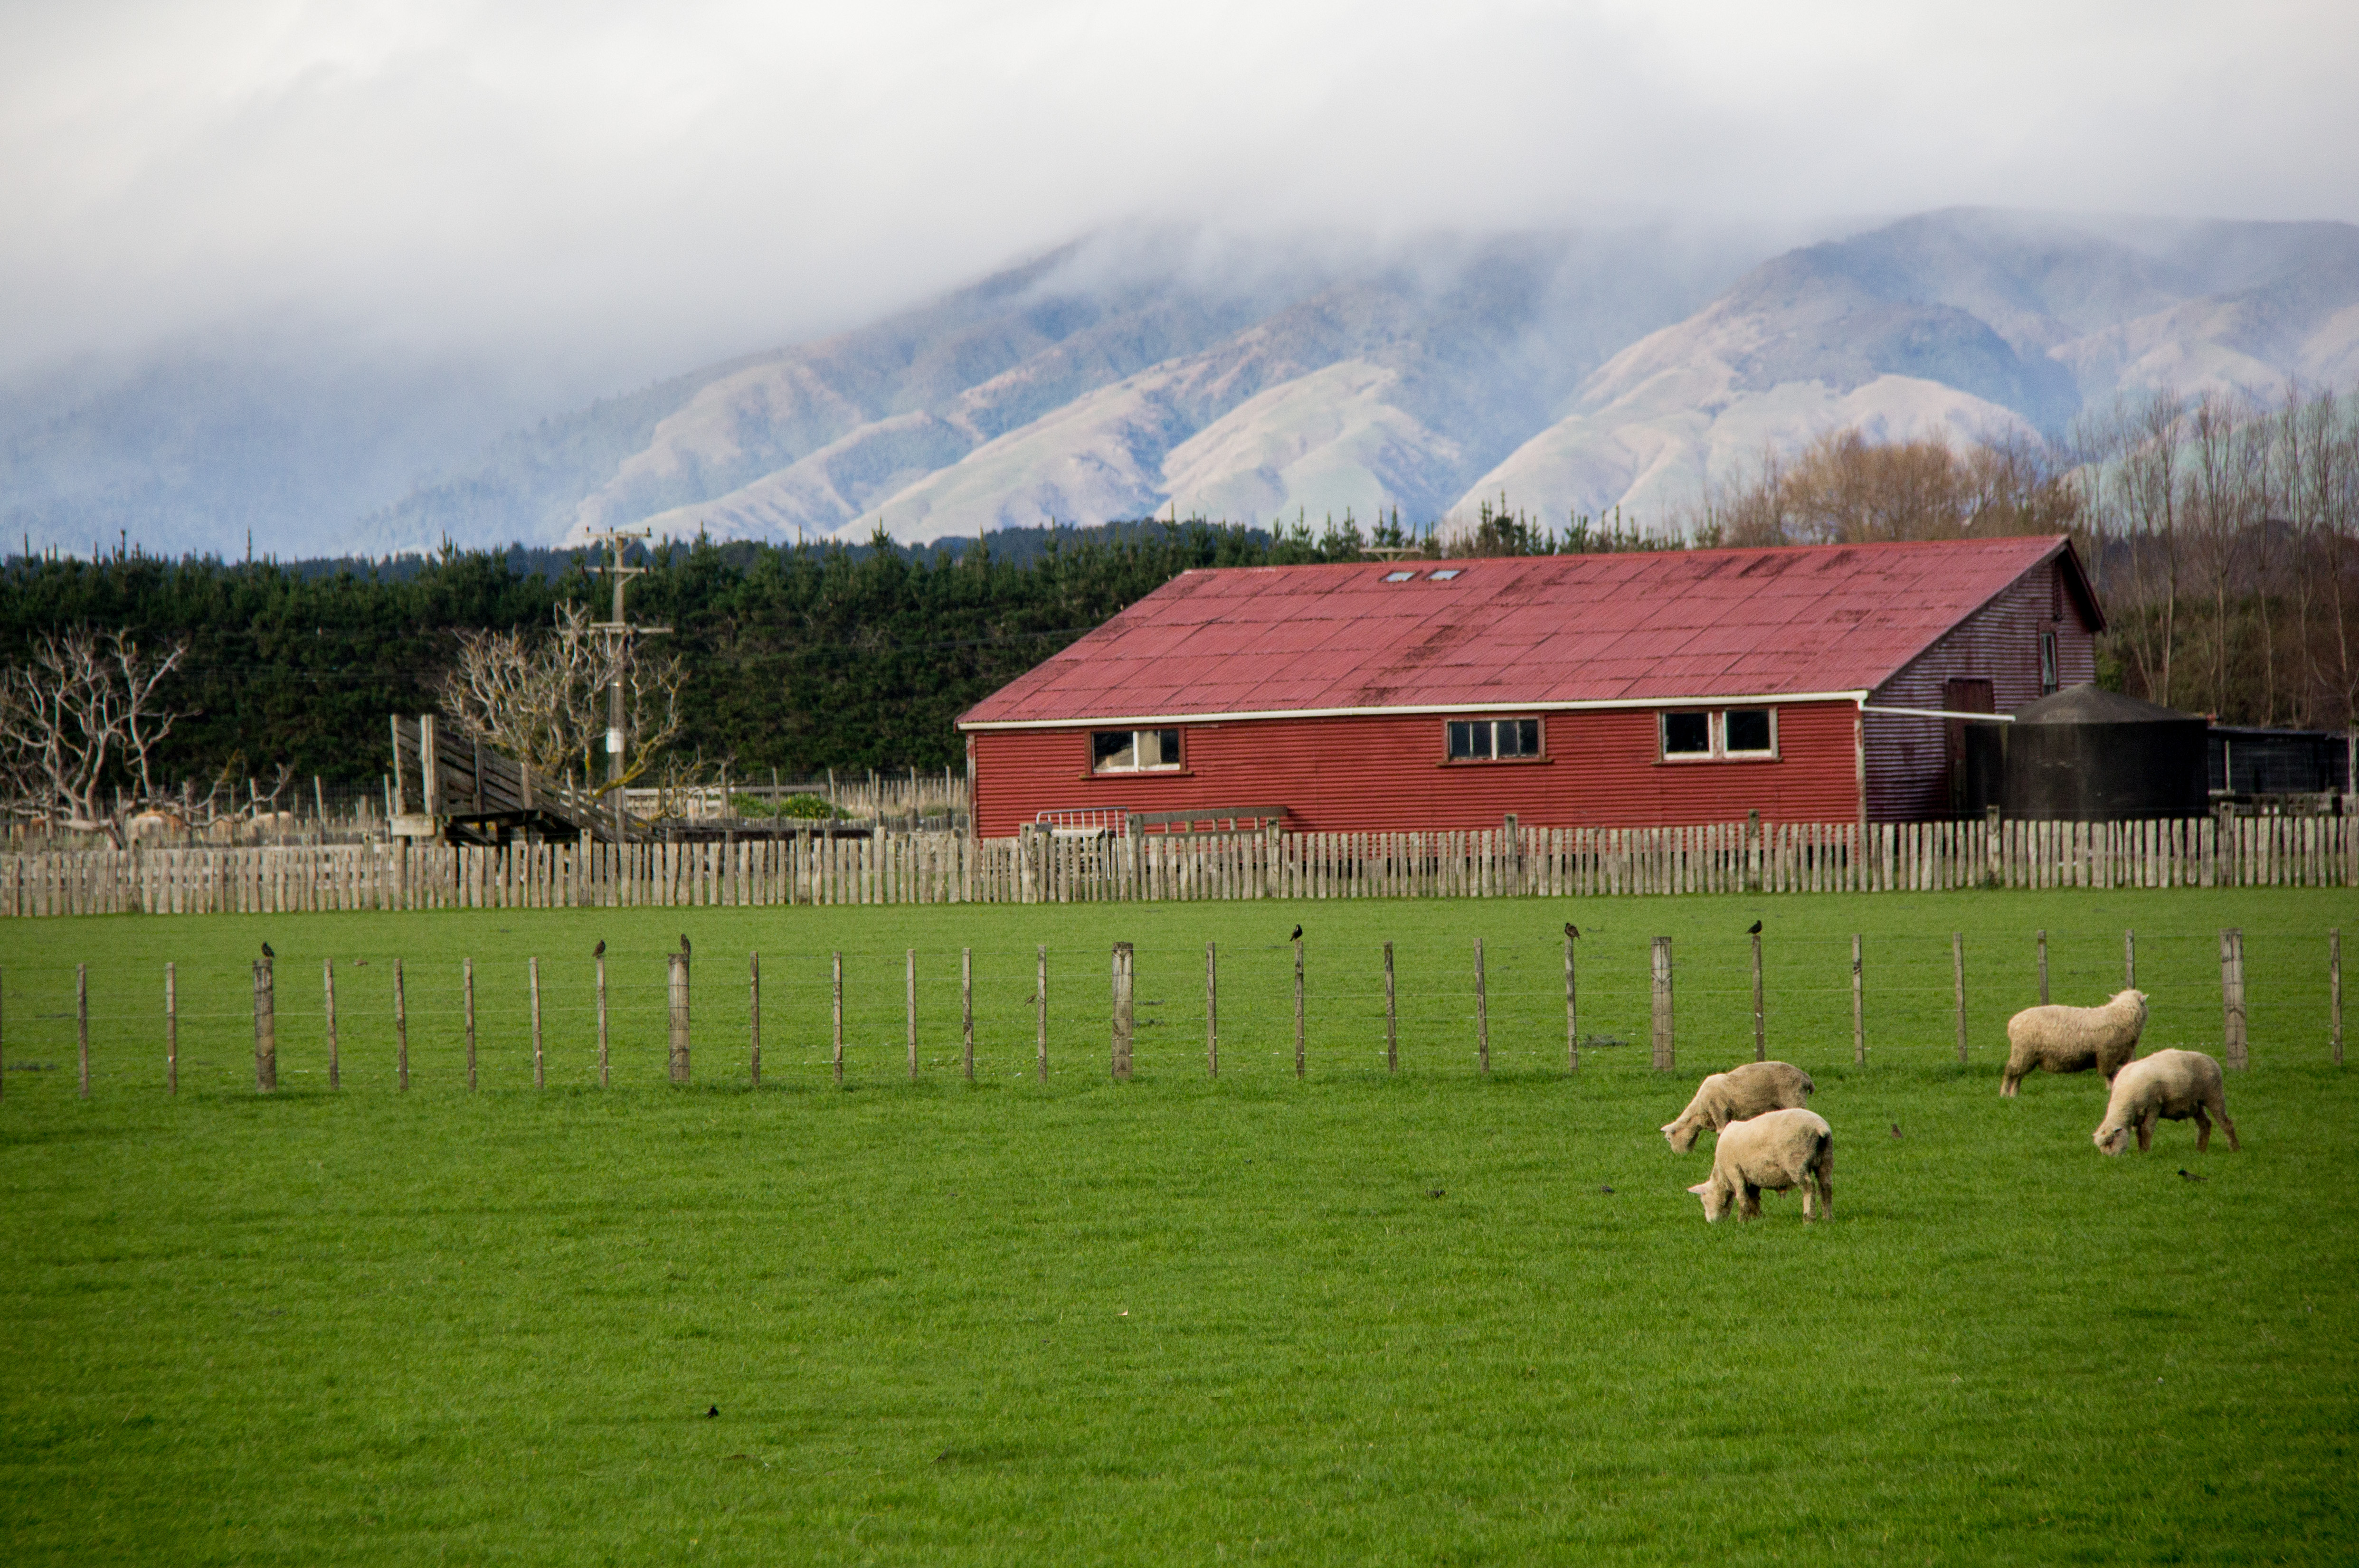 Wool barn after